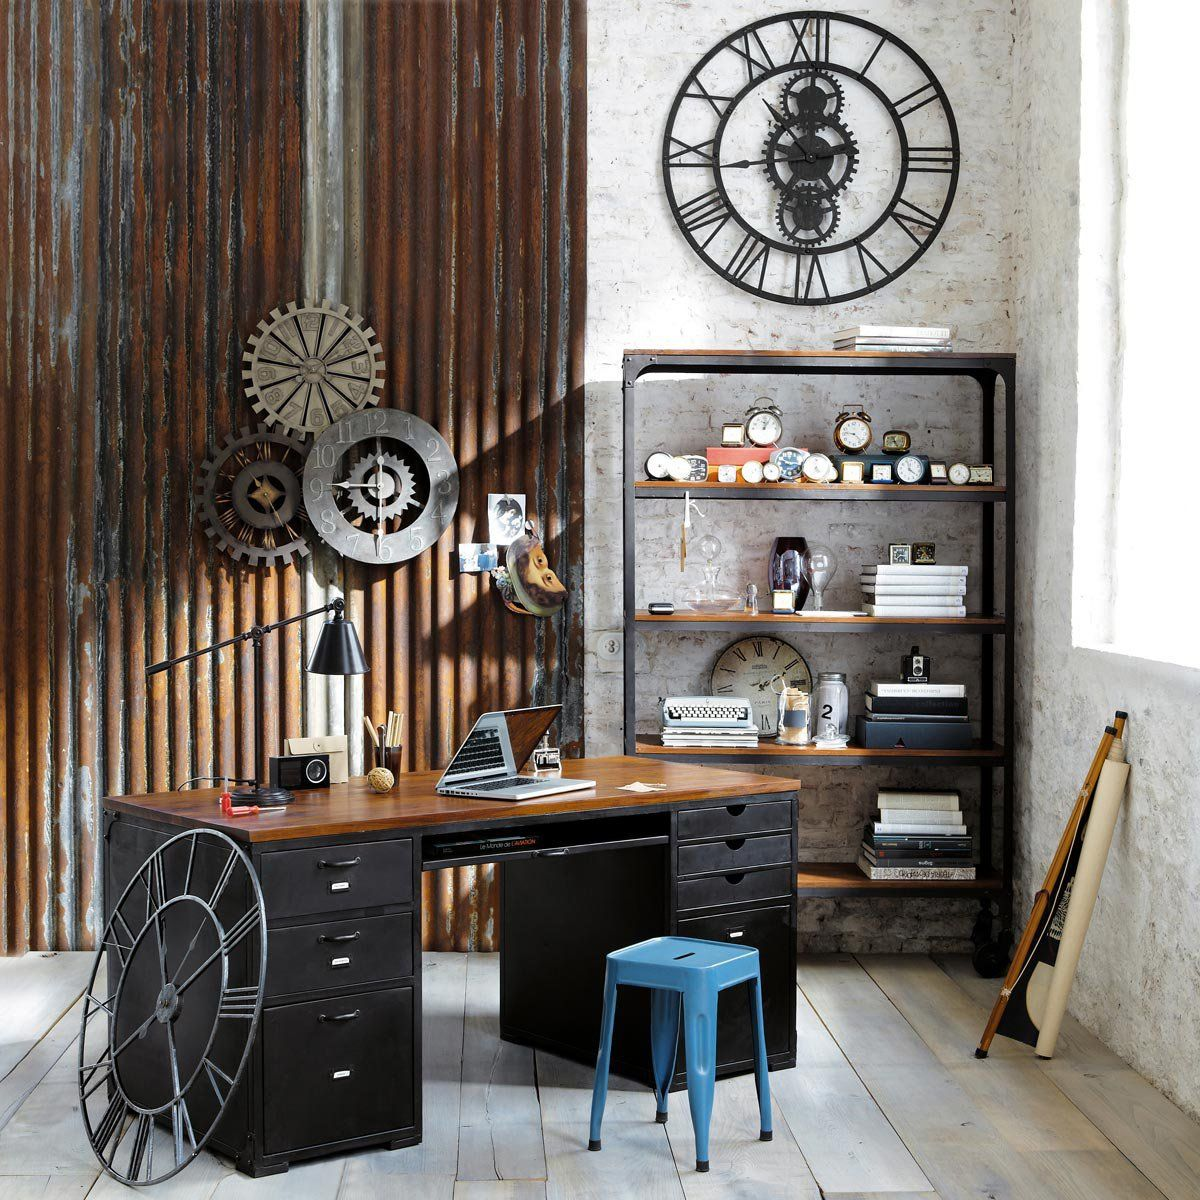 industrial office decor. Metal Siding | Office Workspace Tolix Stool Steampunk Style Industrial Interior Retro Decor Home Design Pinterest